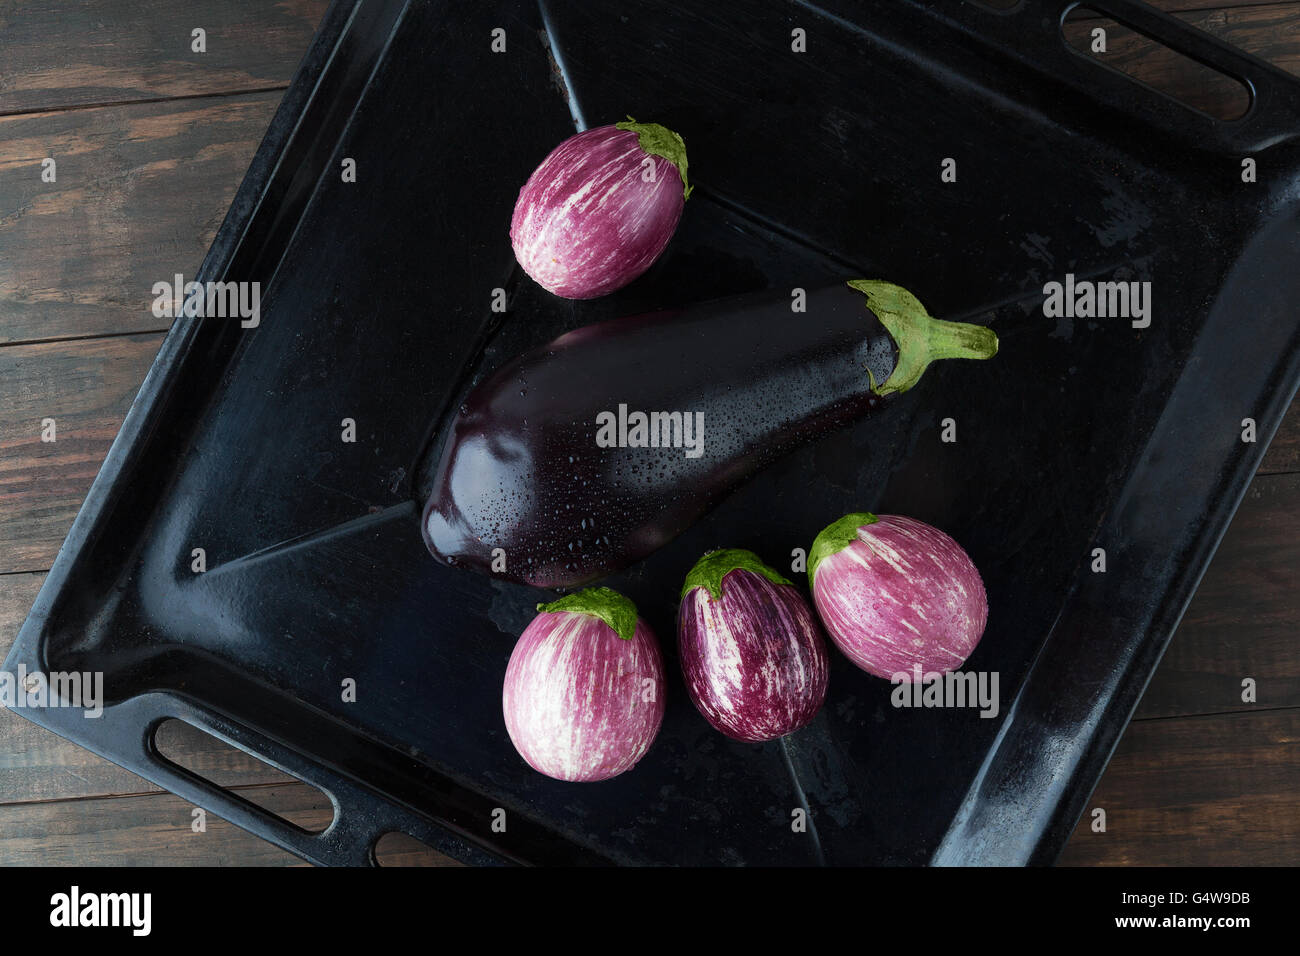 Wet eggplants - black magic, and purple striped eggplants in rustic baking tray. Top view with copy space - Stock Image